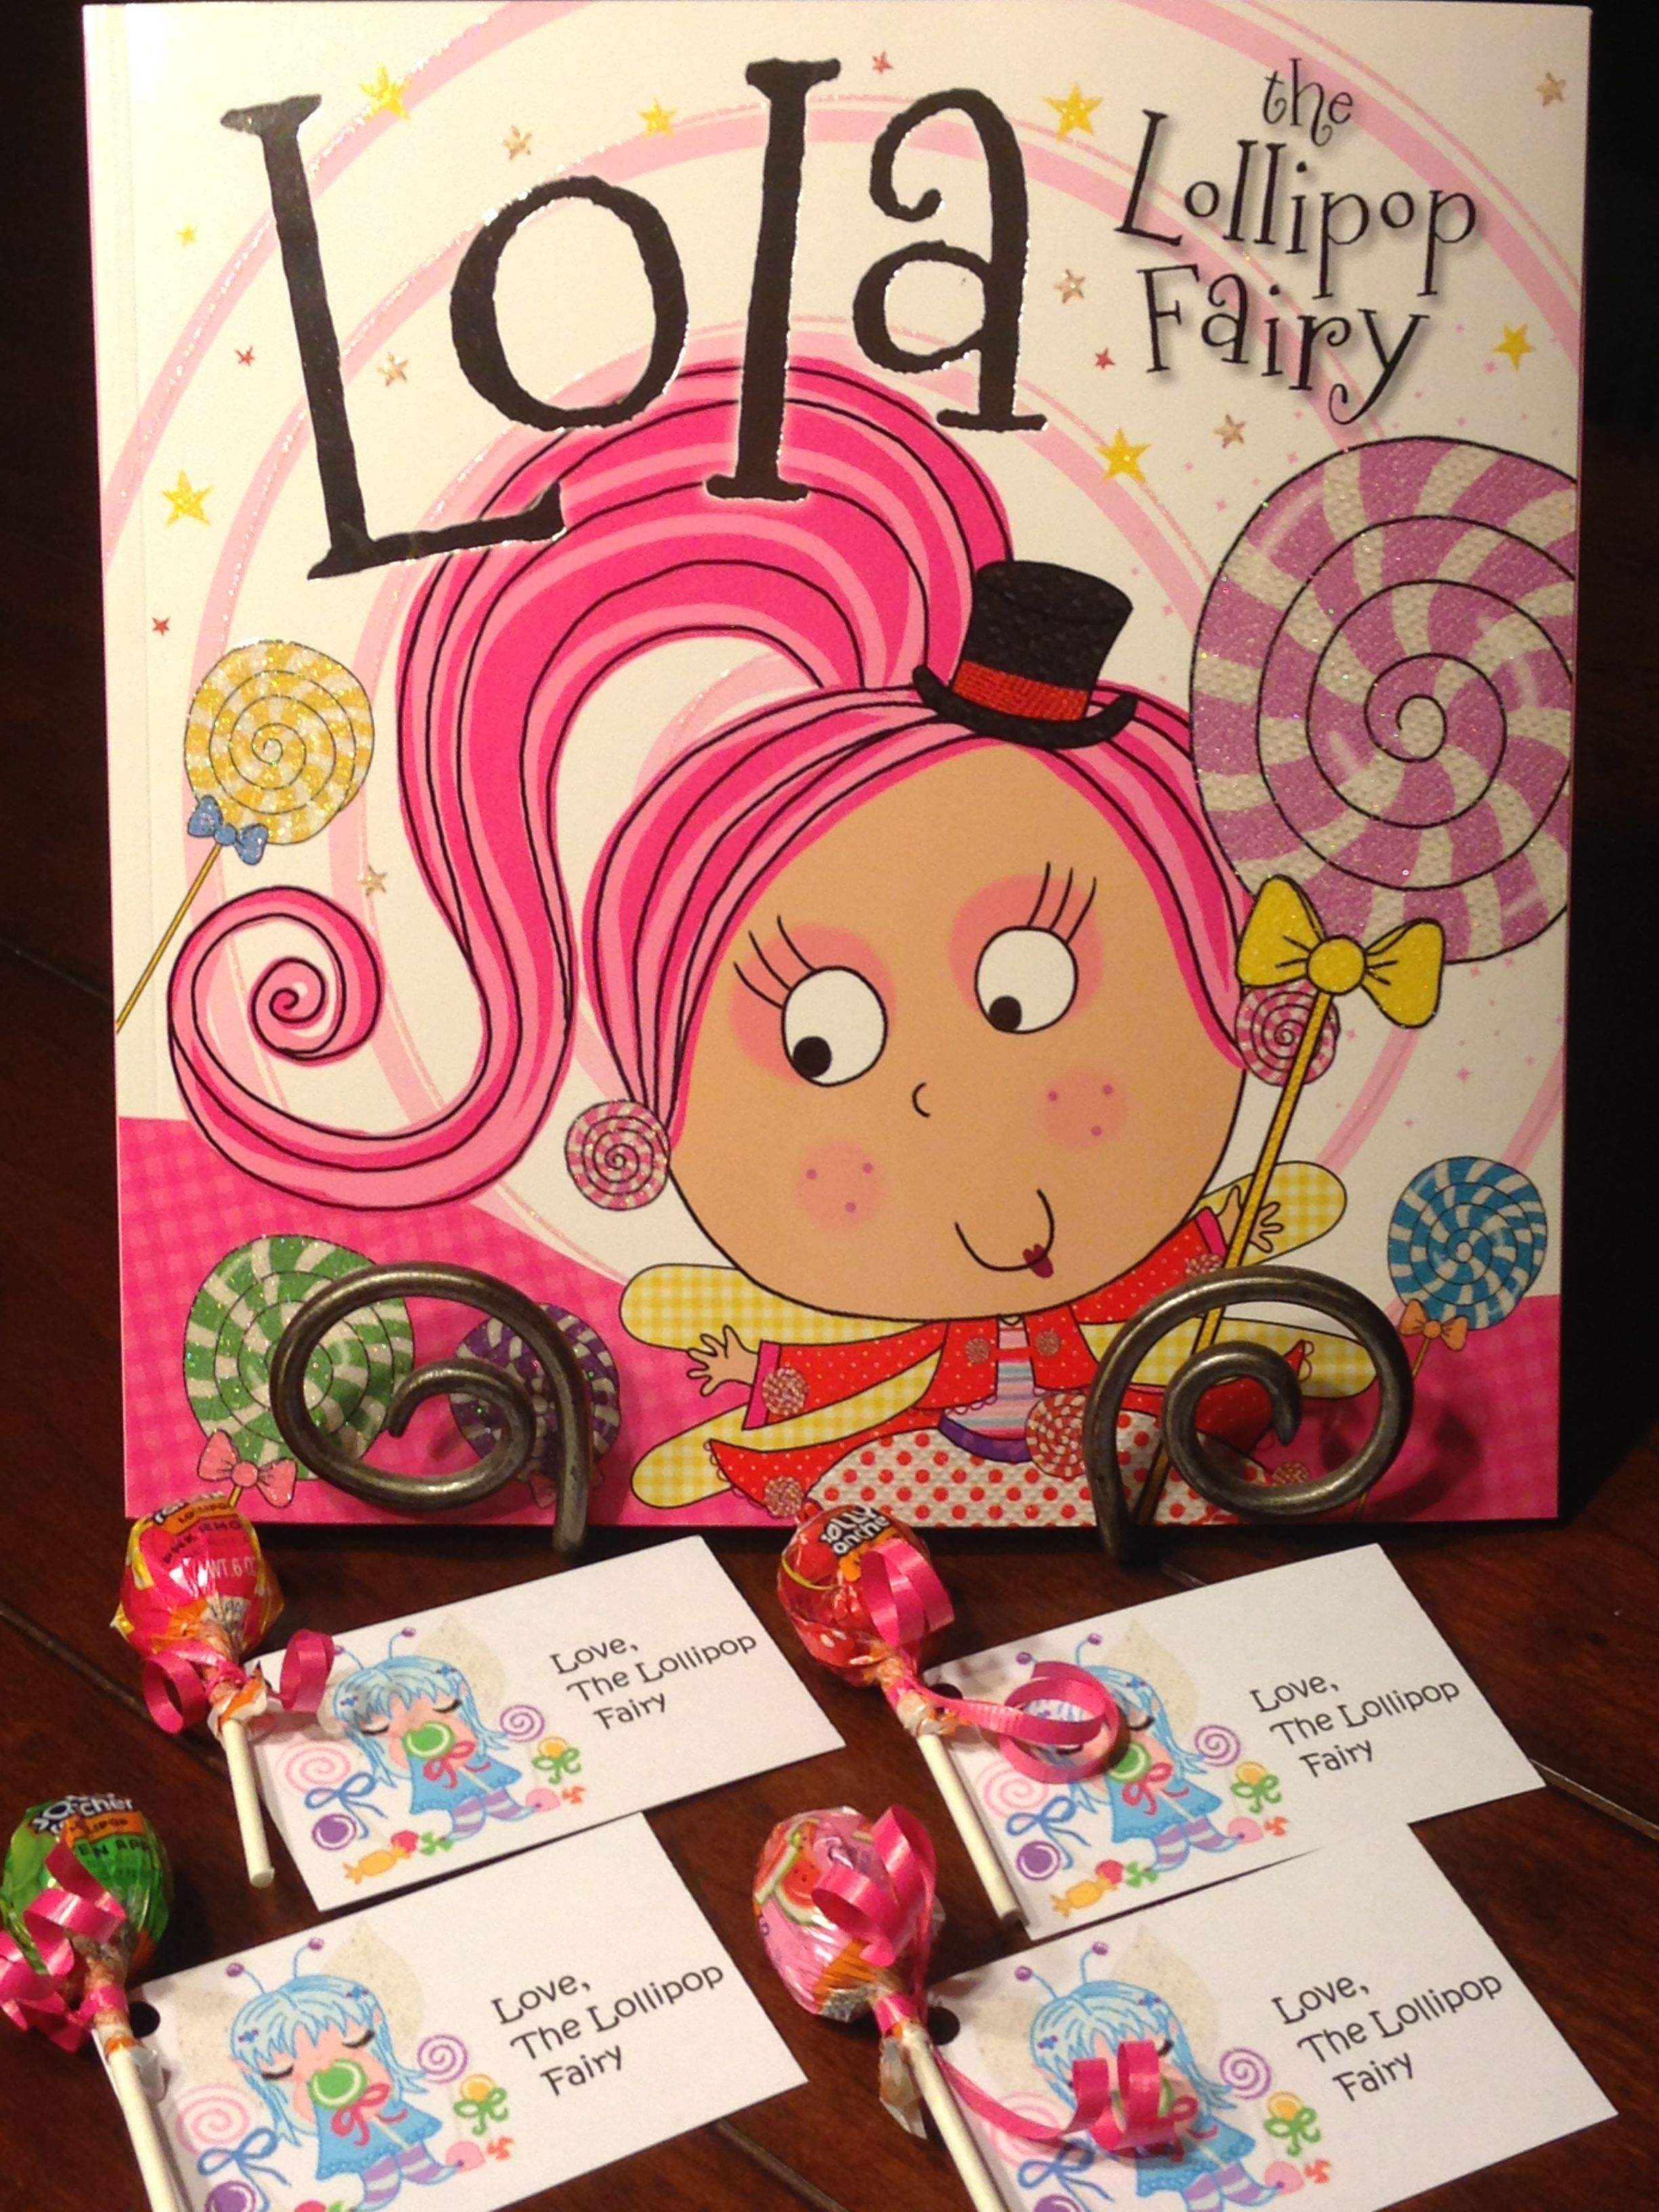 Lola the Lollipop Fairy & lollipop treats for my daughter's pre-k class.